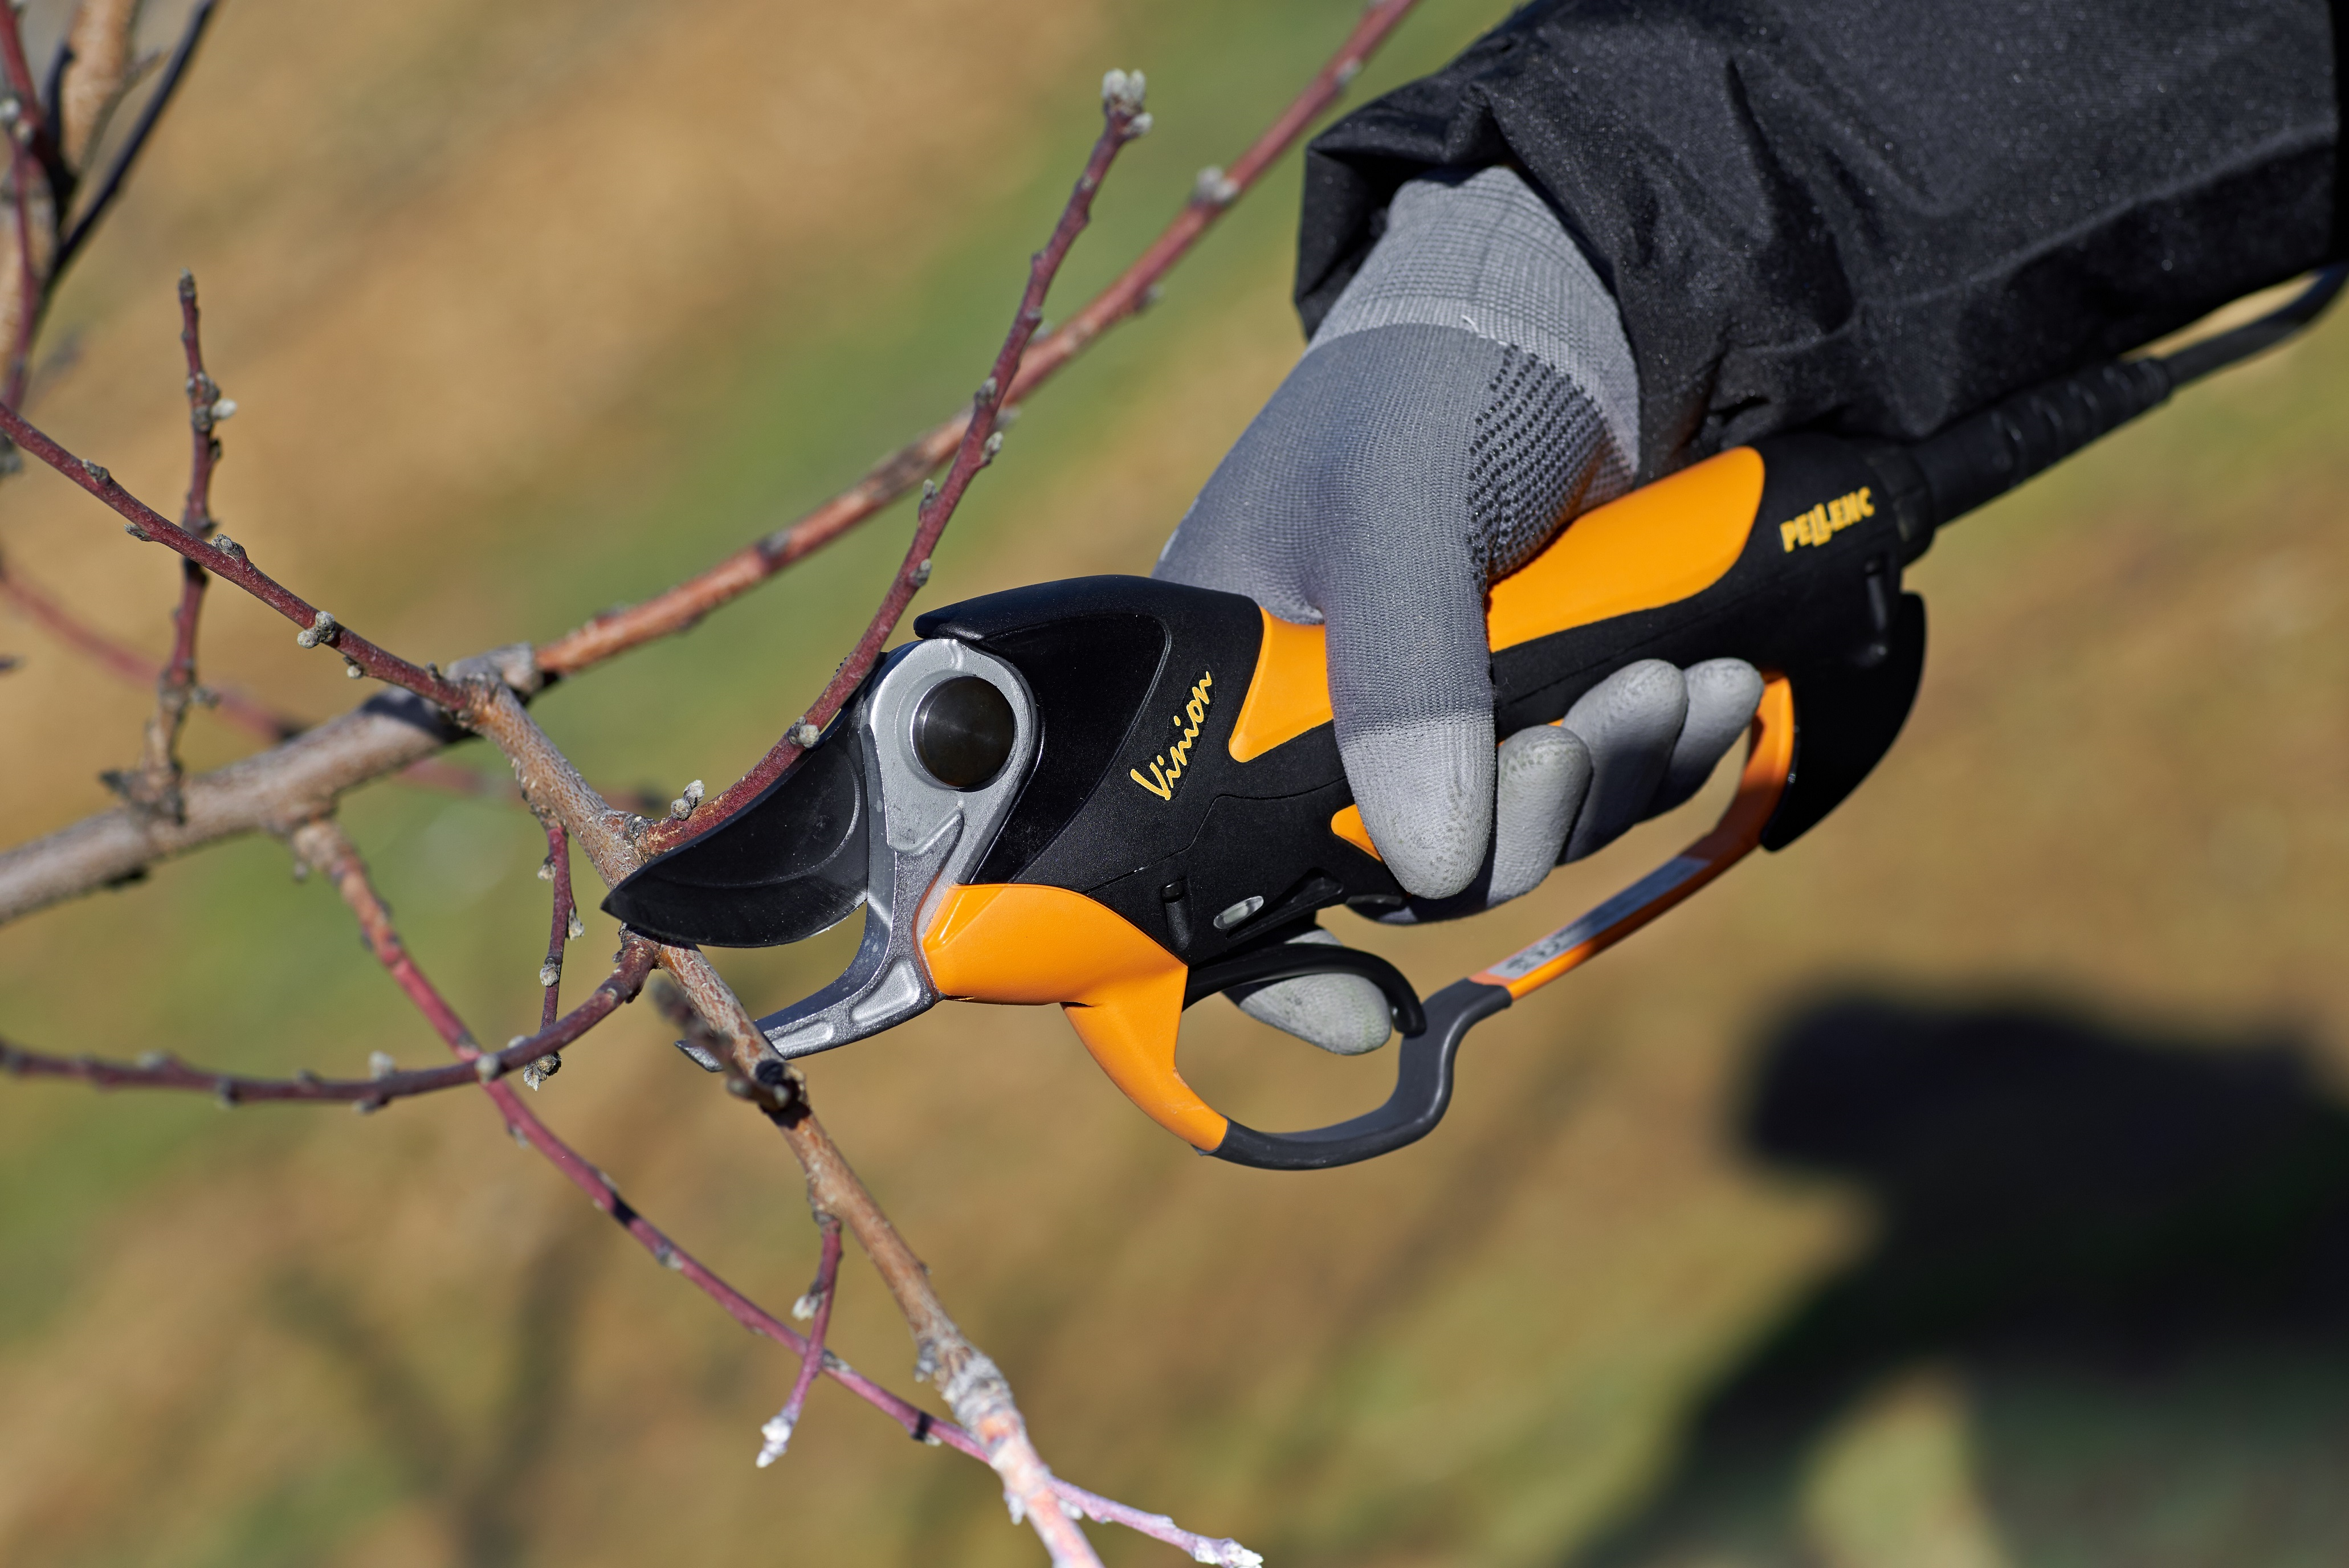 Pellenc Launches Two new Battery Powered Pruning Shears